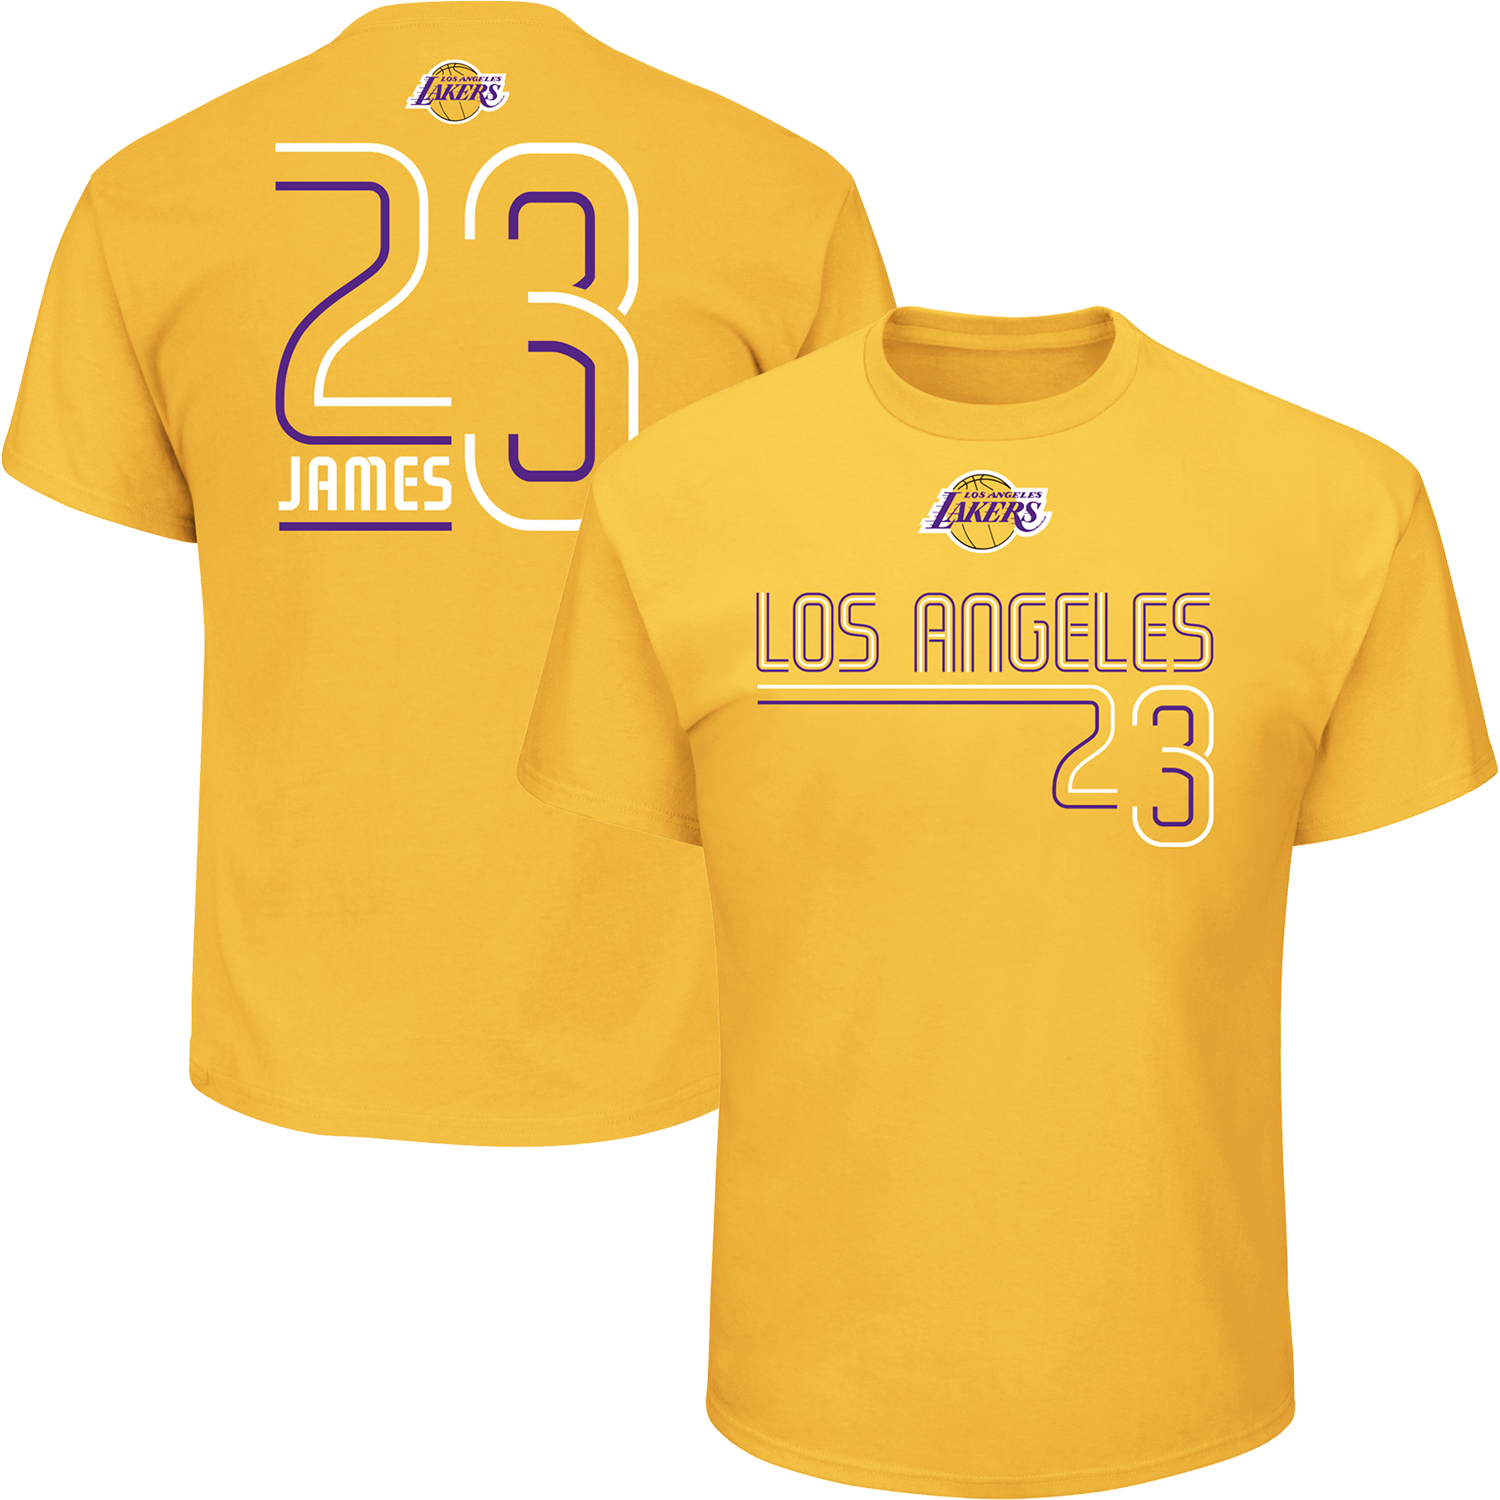 Men's Majestic LeBron James Gold Los Angeles Lakers Spirited Competitor Player Name & Number T-Shirt